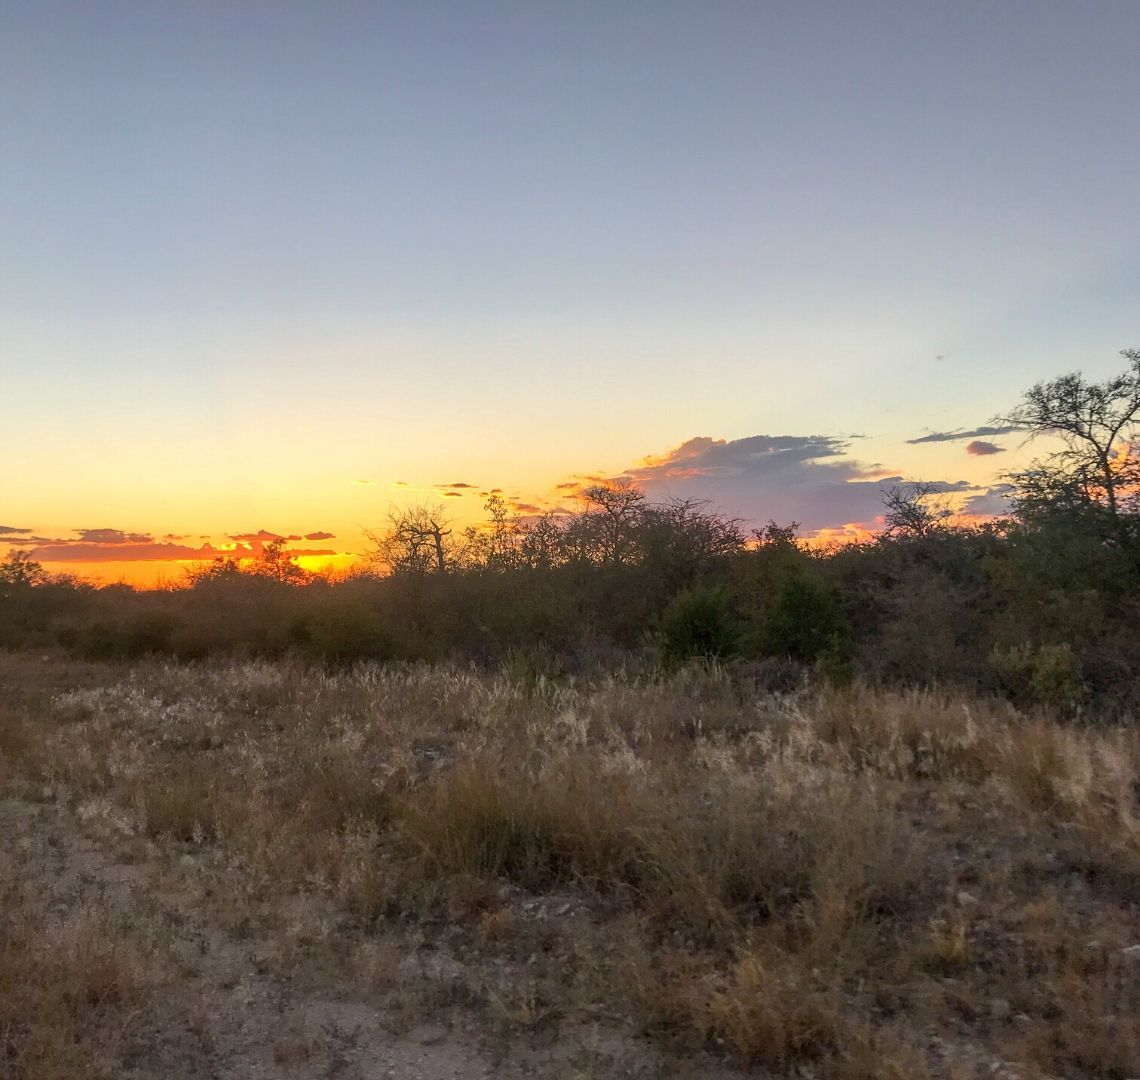 2 Week Namibia Itinerary - sunset over the brush in Etosha. The sun has just disappeared behind the vegetation and there are a few clouds in the sky.